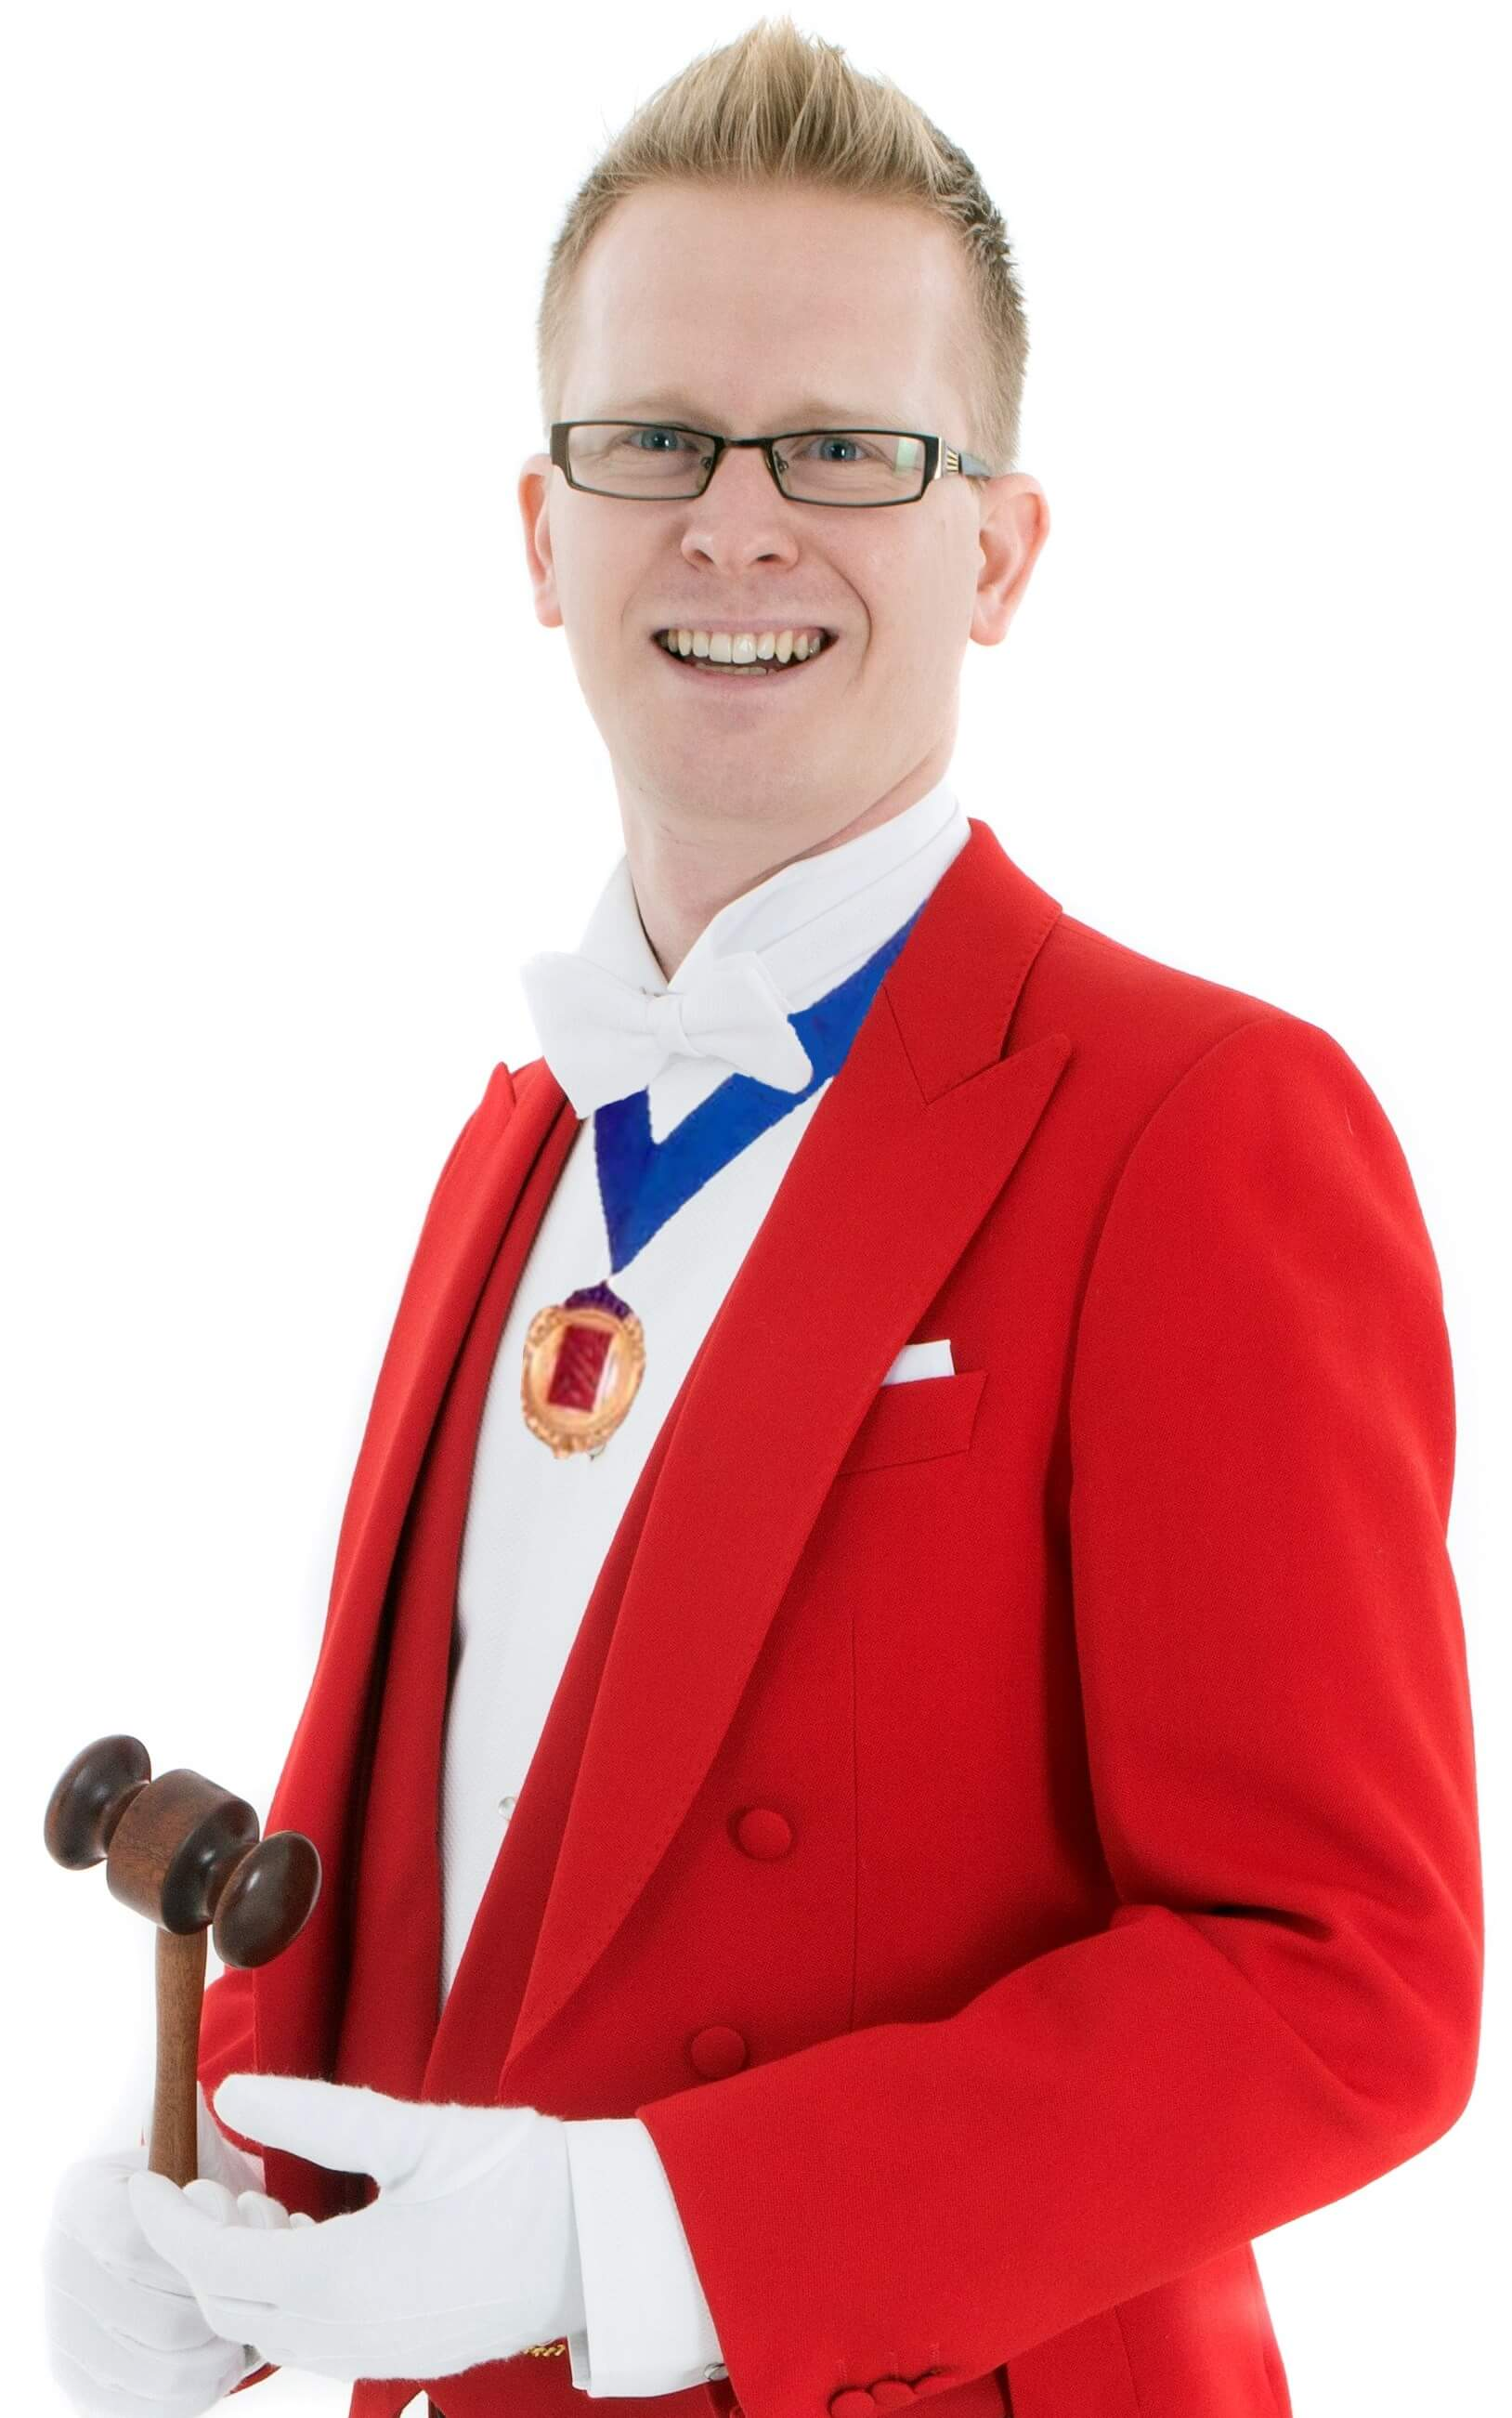 Professional Toastmaster and Master of Ceremonies East Sussex - Dan Hale